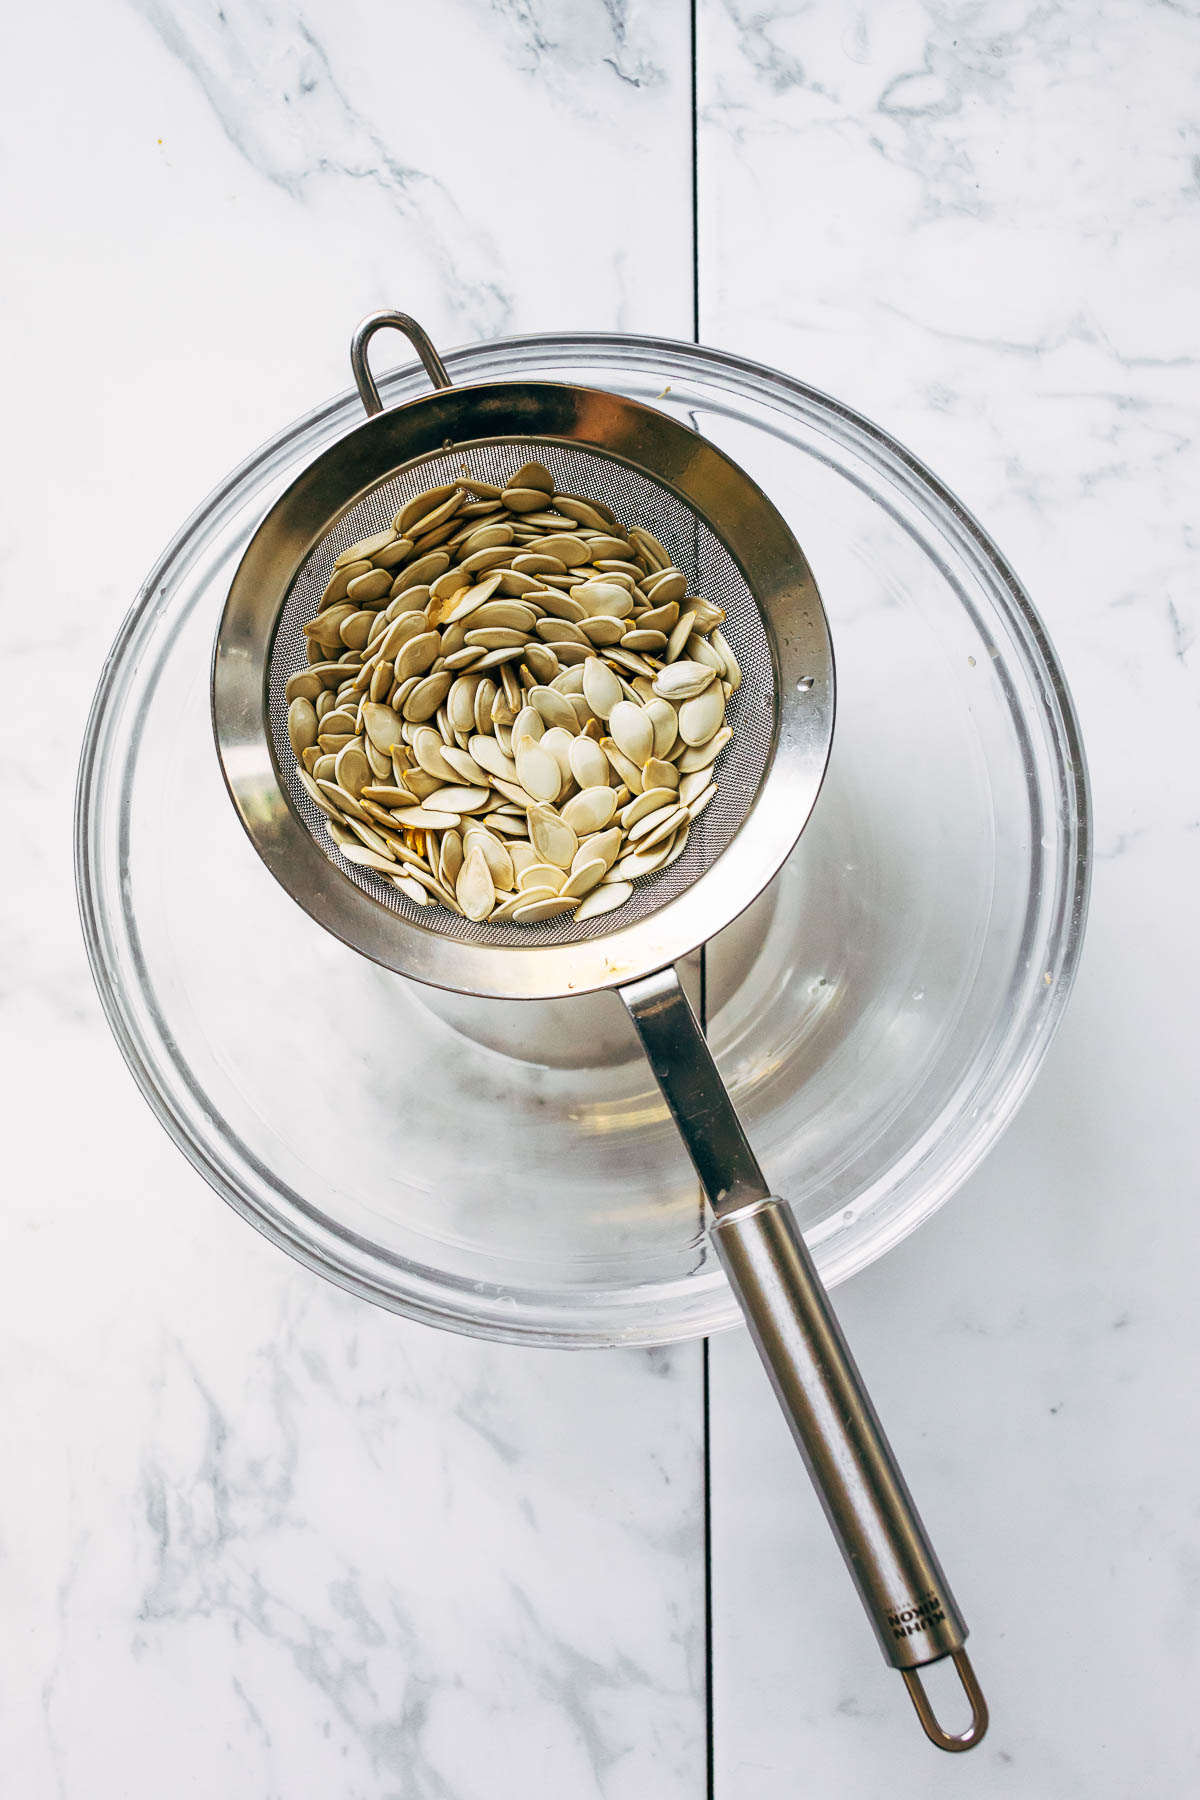 A colander filled with raw, rinsed seeds sitting over a glass bowl to drain.